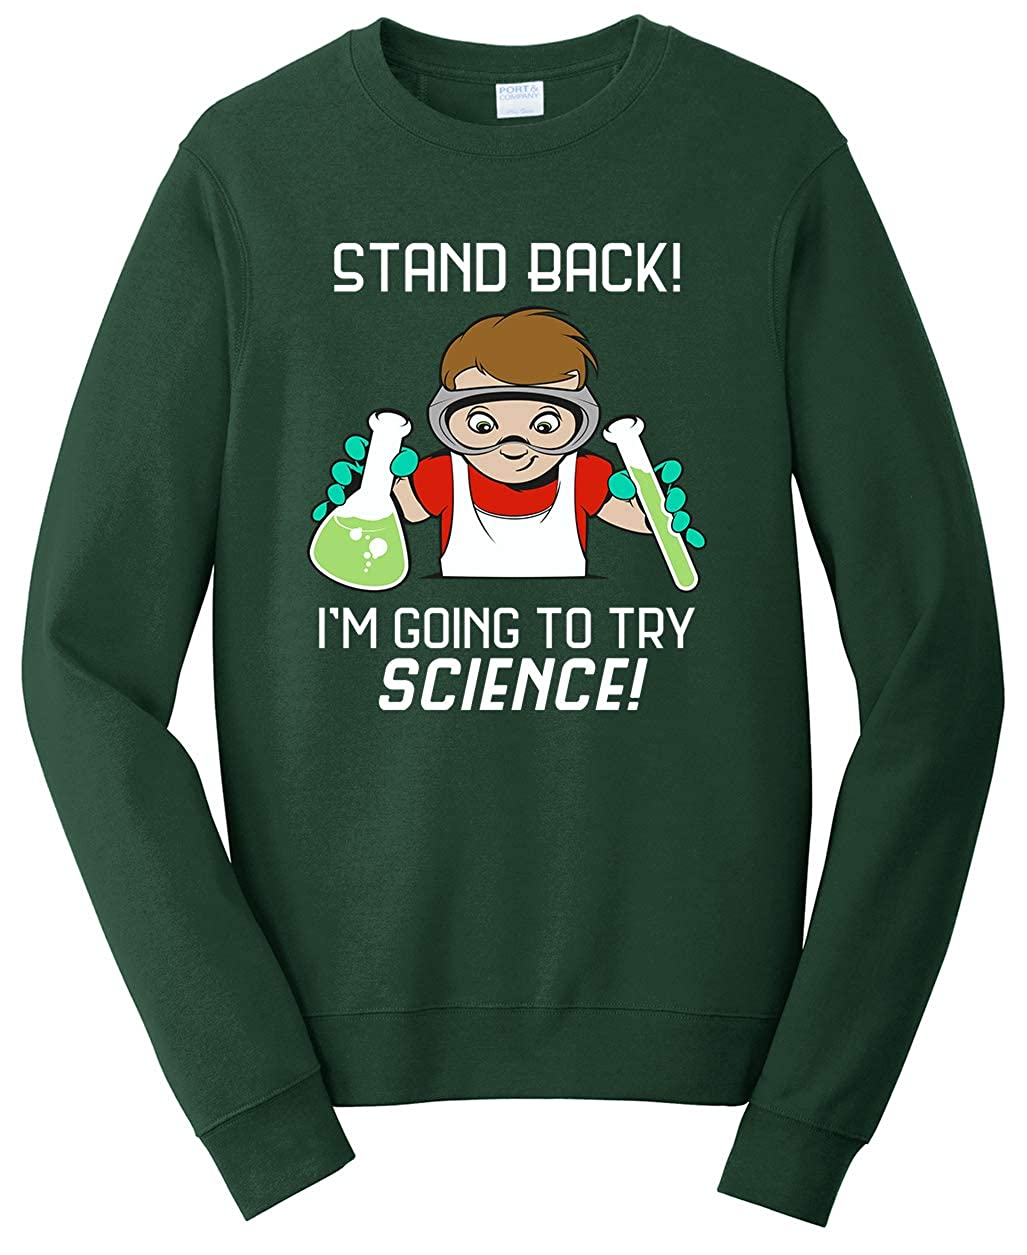 Young Boy Sweatshirt Tenacitee Unisex Stand Back Im Going to Try Science